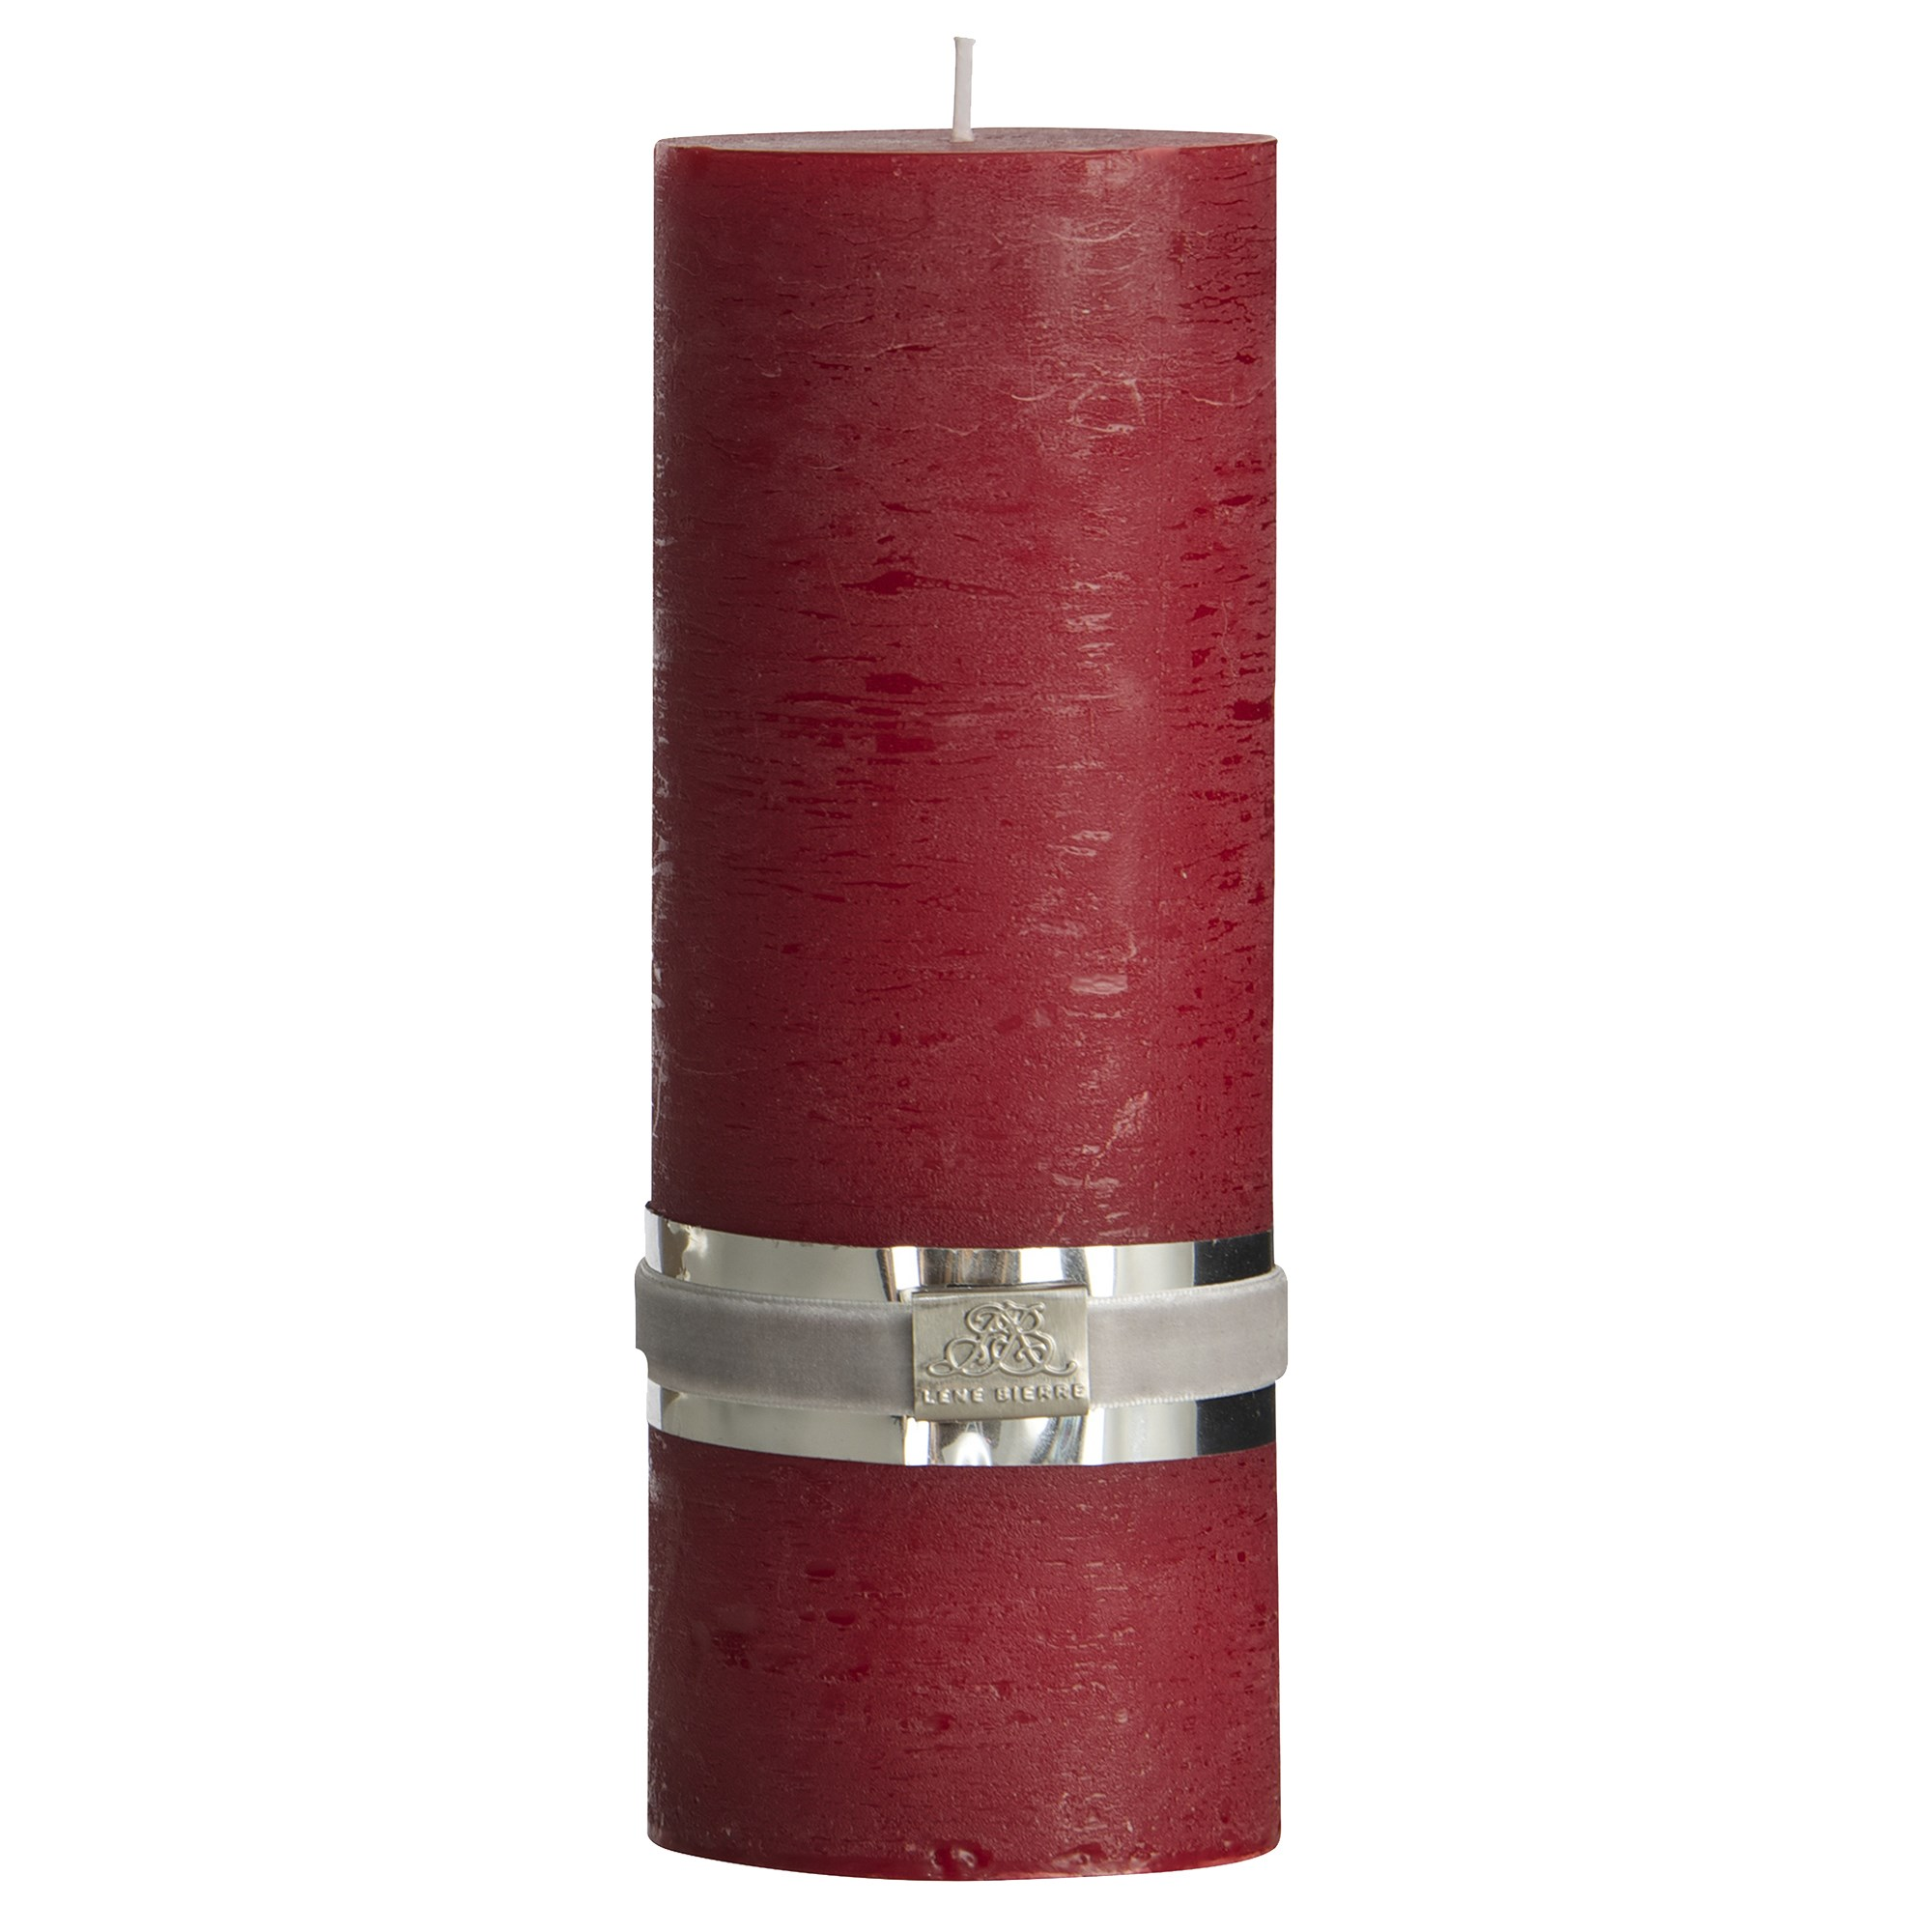 LENE BJERRE - Rustic Pillar Candle 20 CM, Dark Red